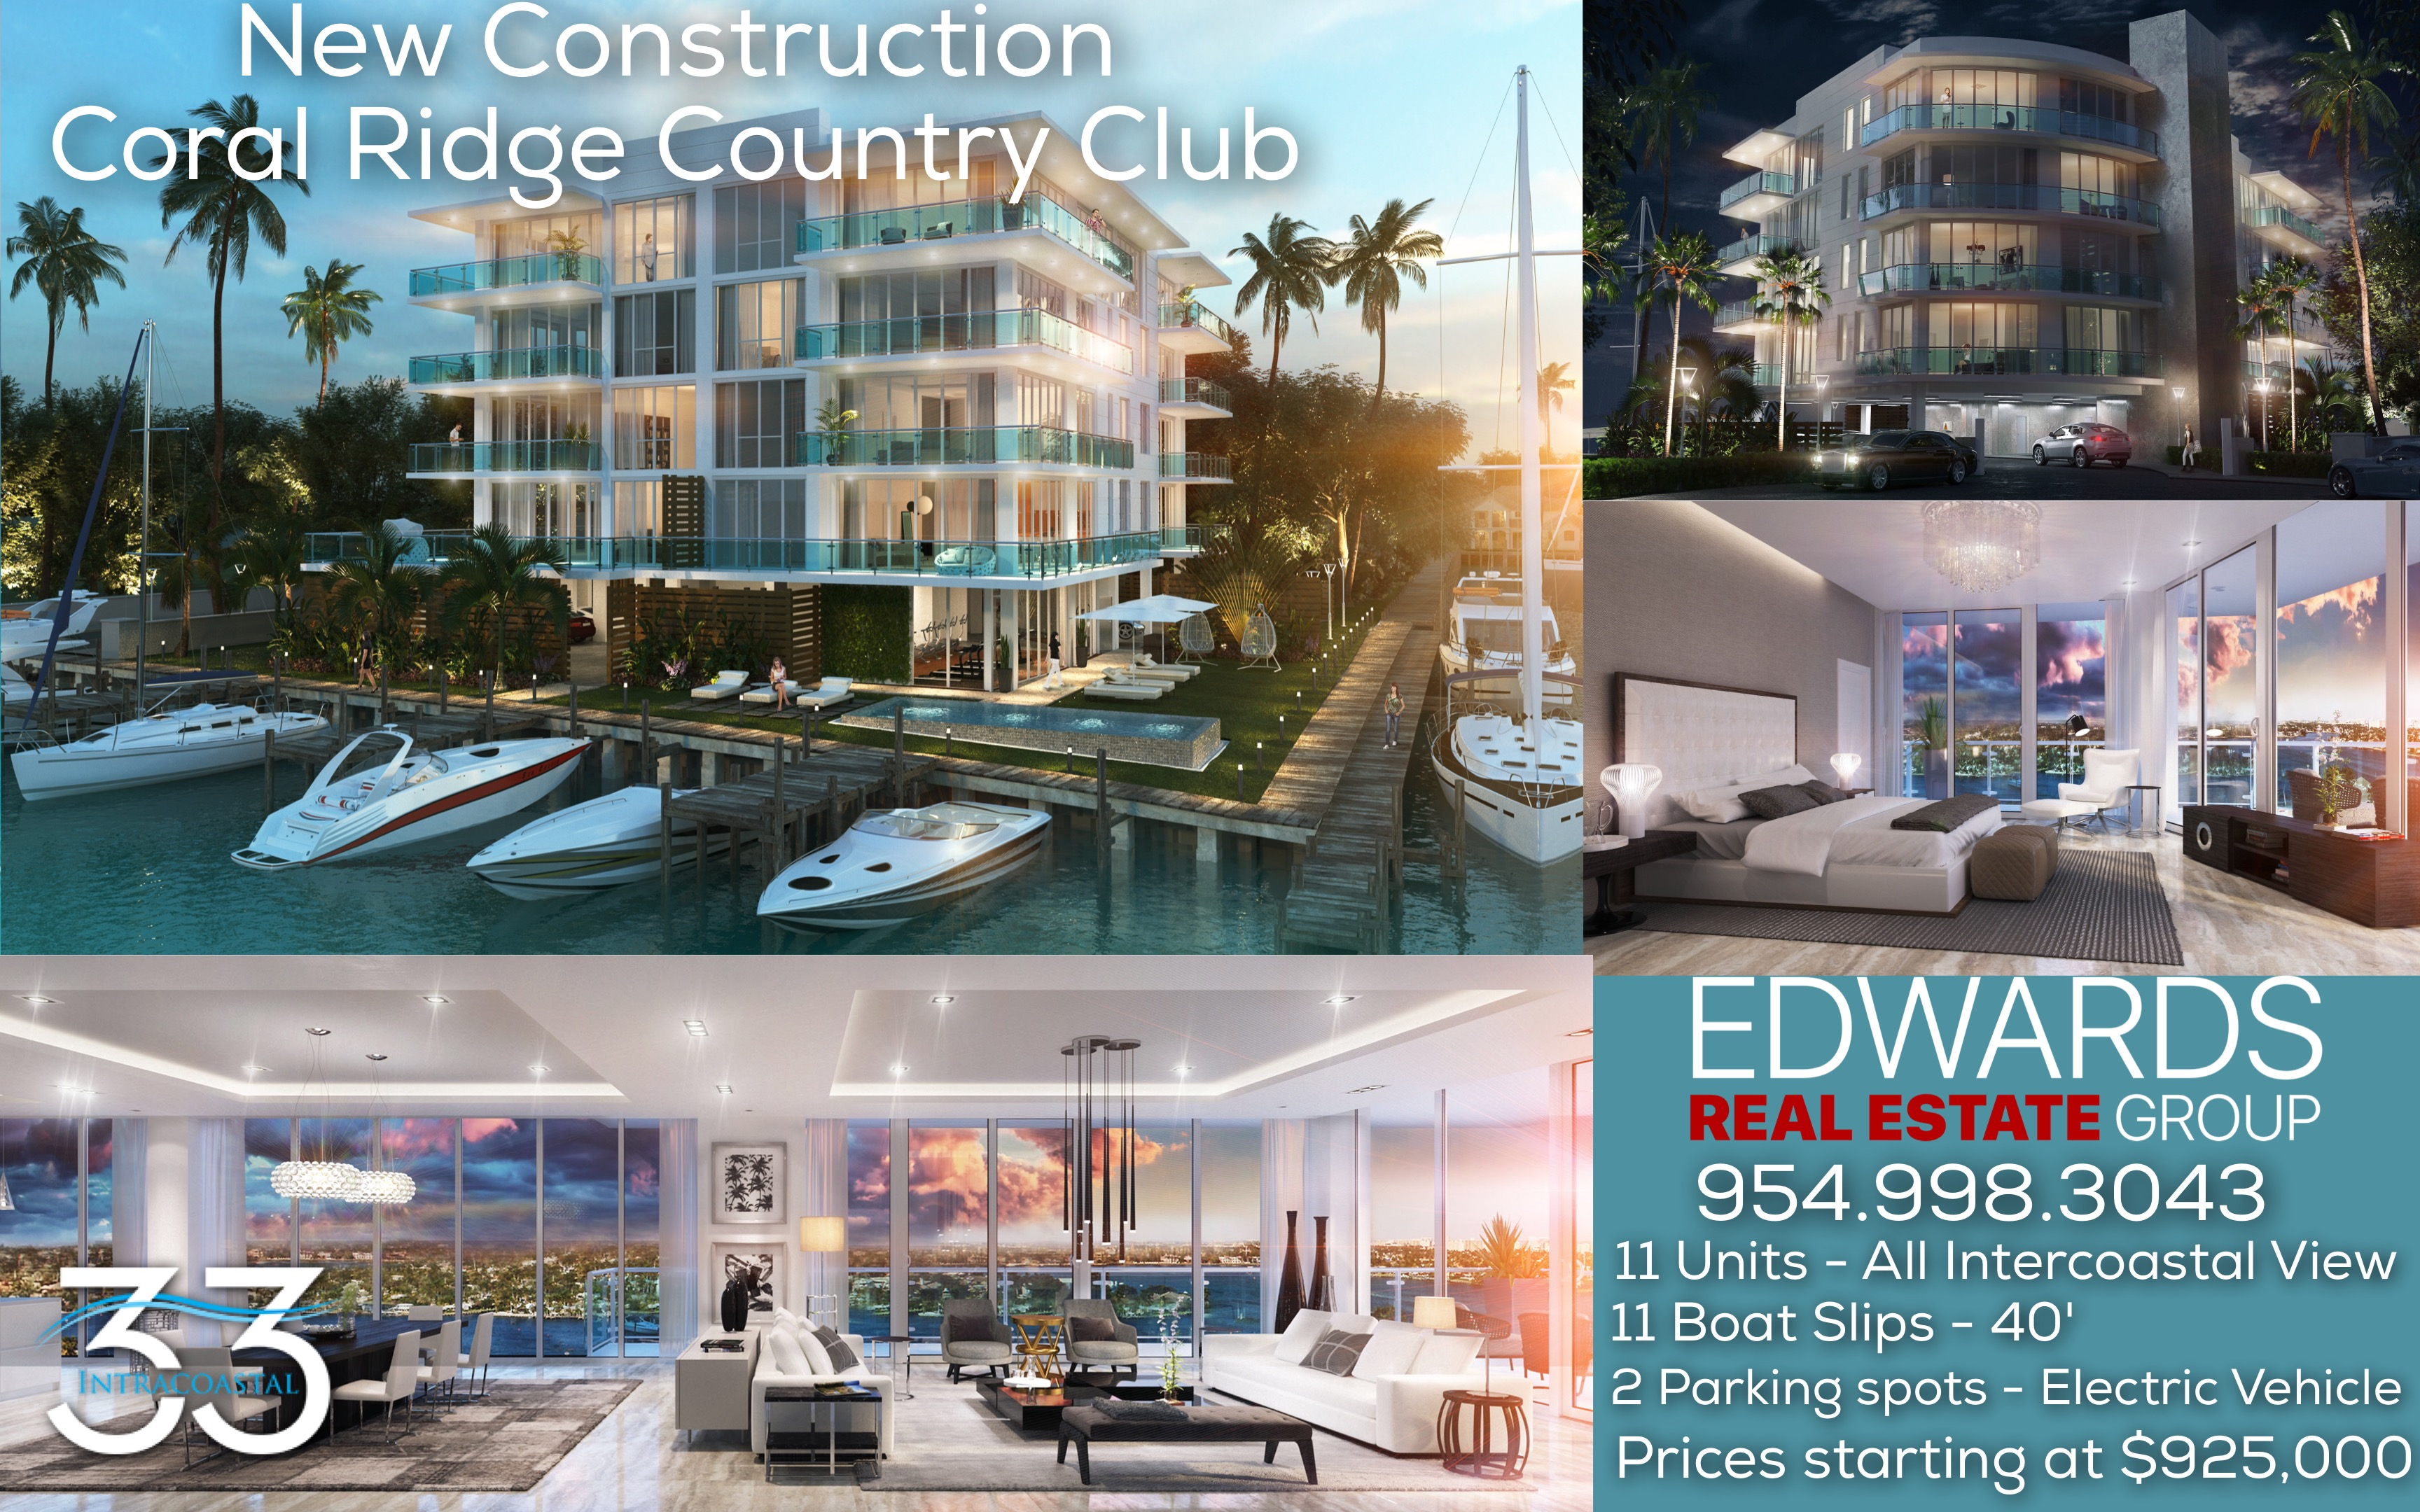 33 Intercoastal New Construction Fort Lauderdale Florida